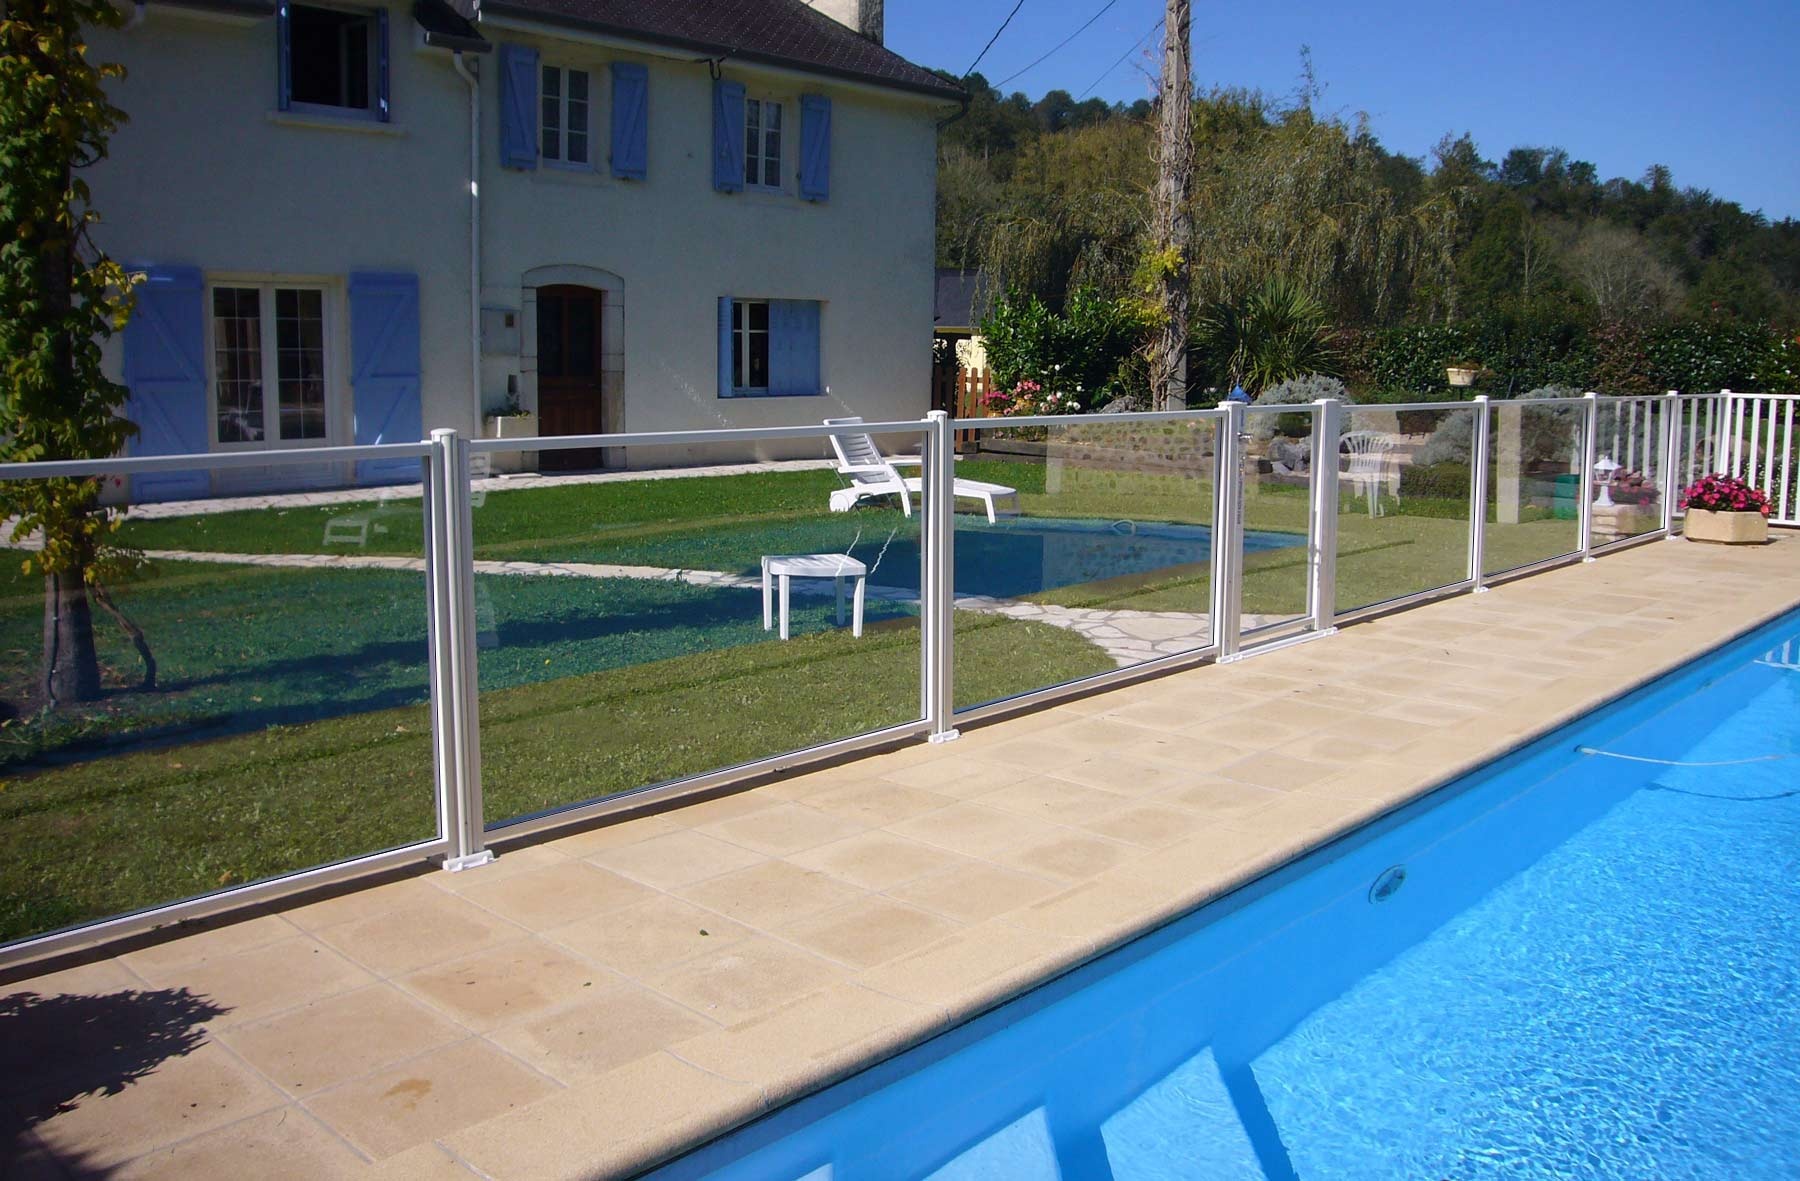 Les barri res en verre de protection d 39 atlantic barriere for Protection pour piscine